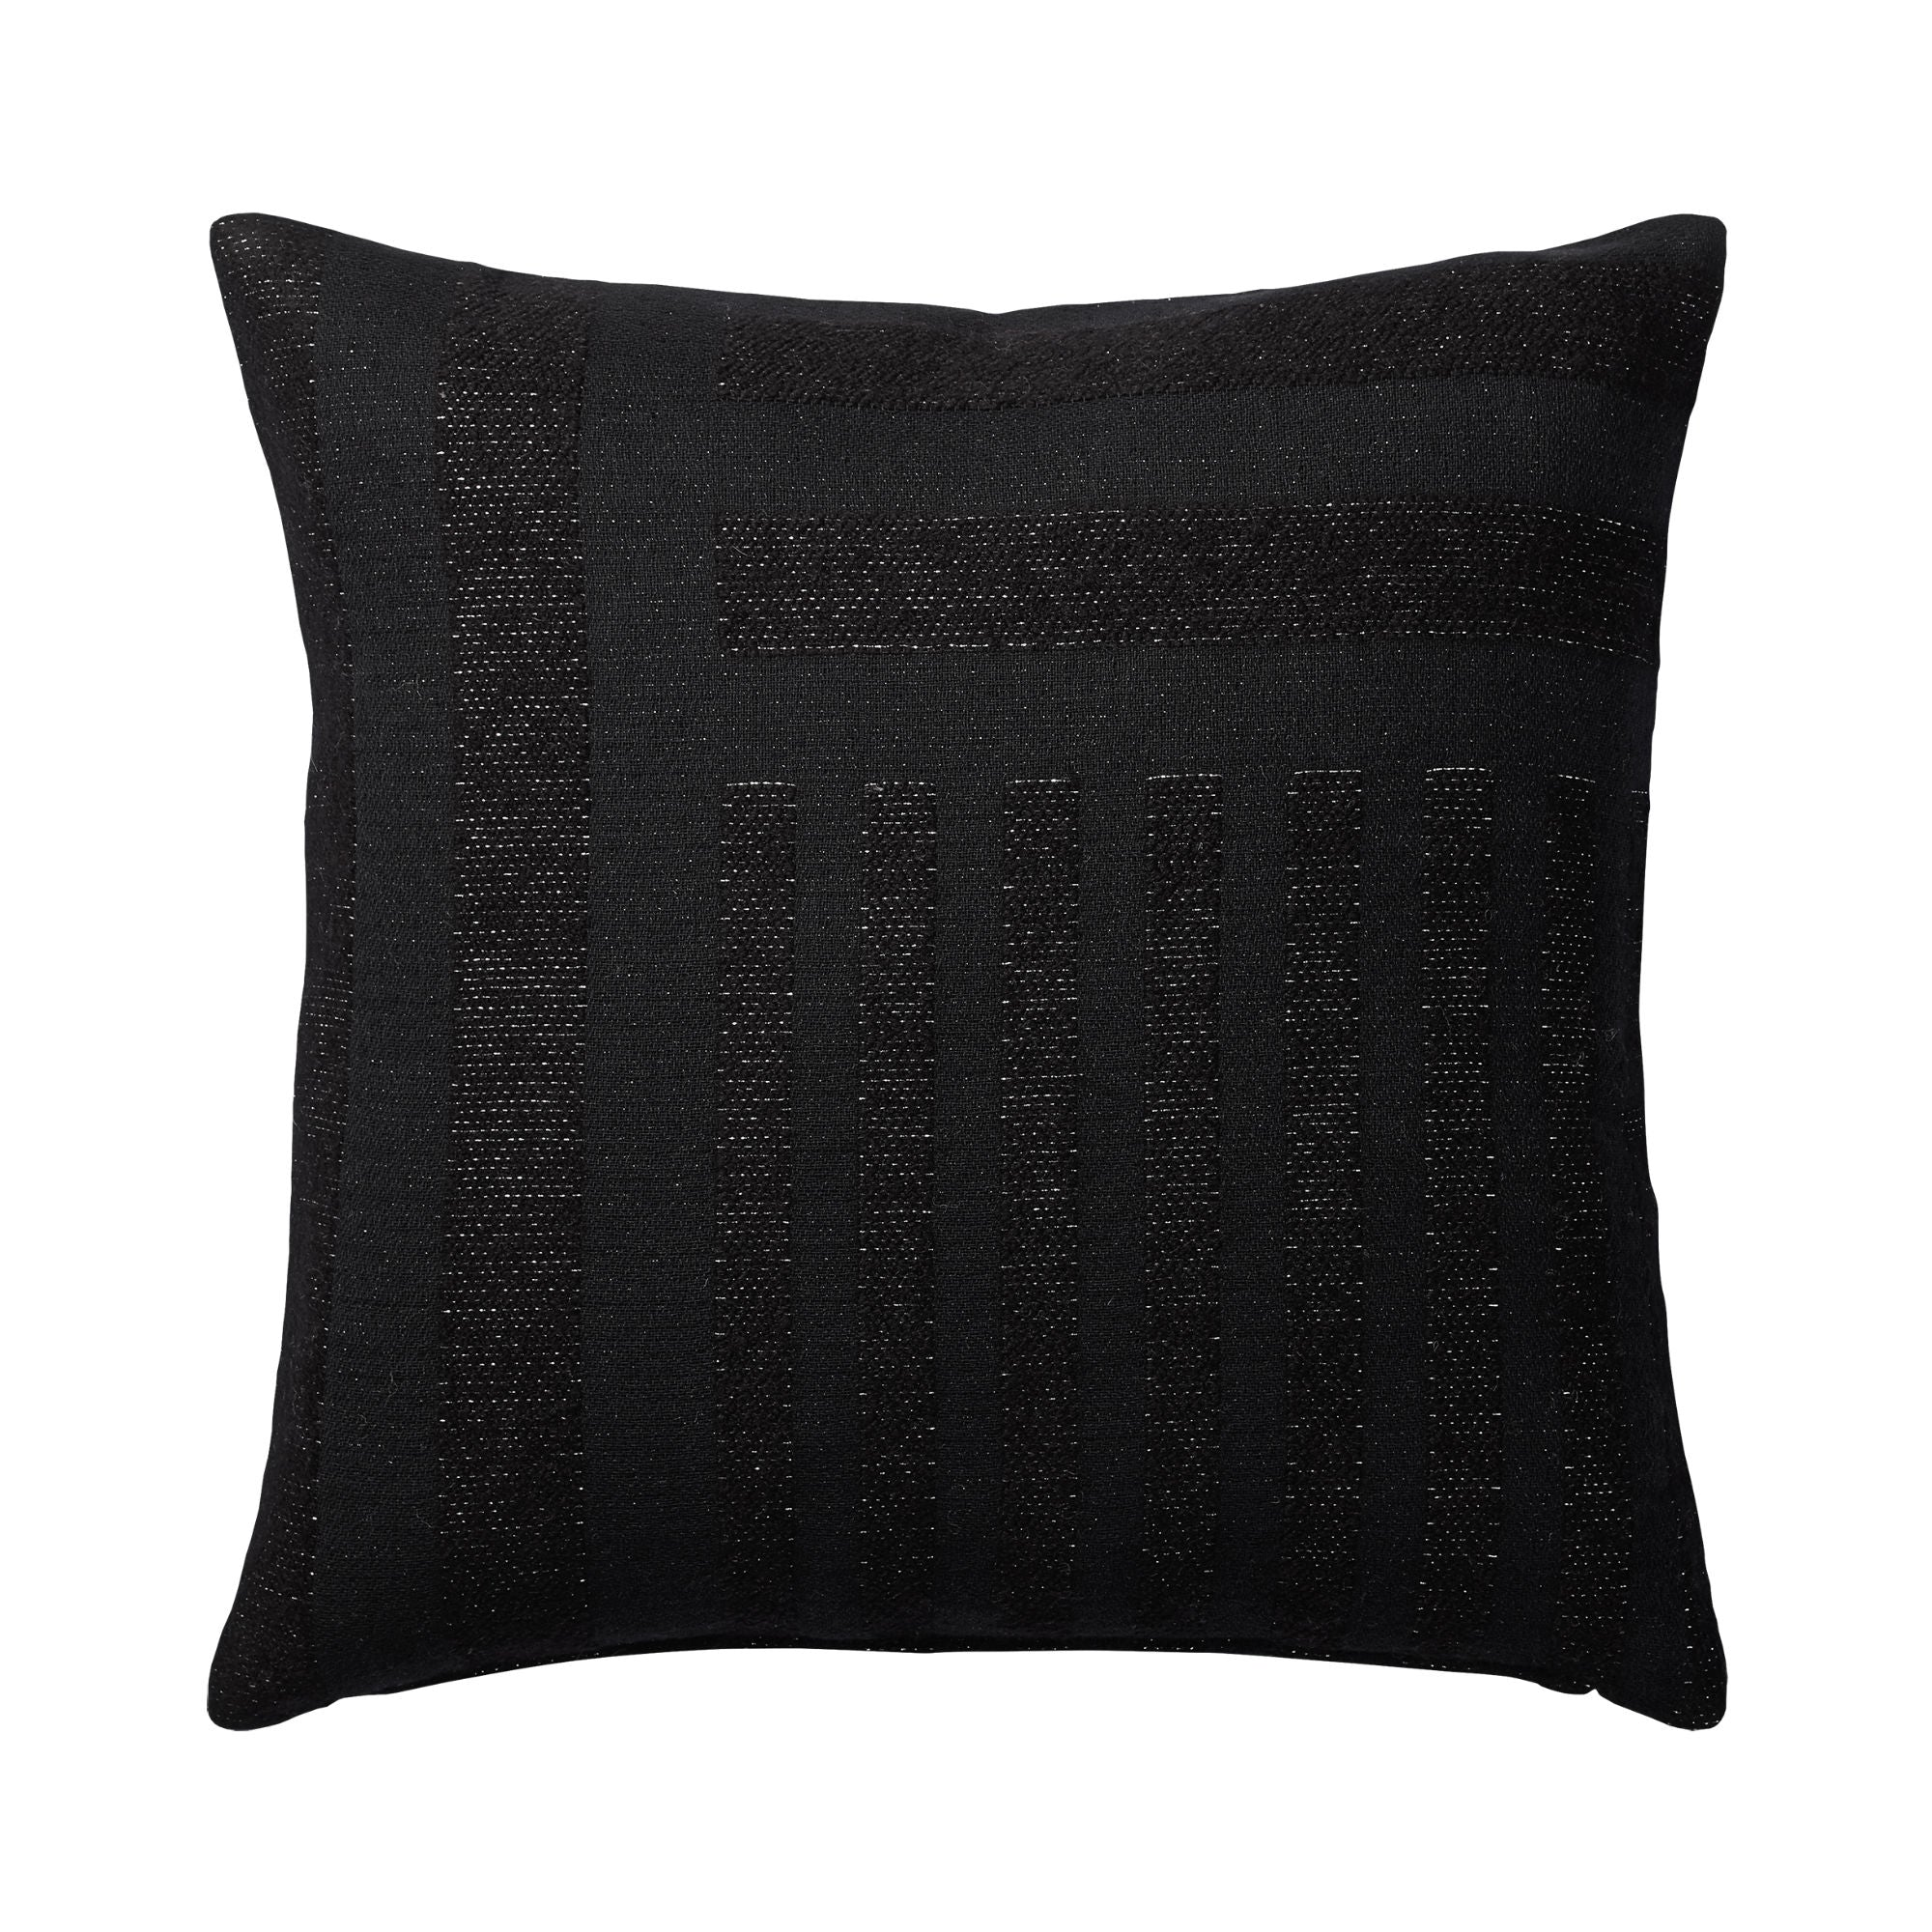 AYTM Contra cushion , black